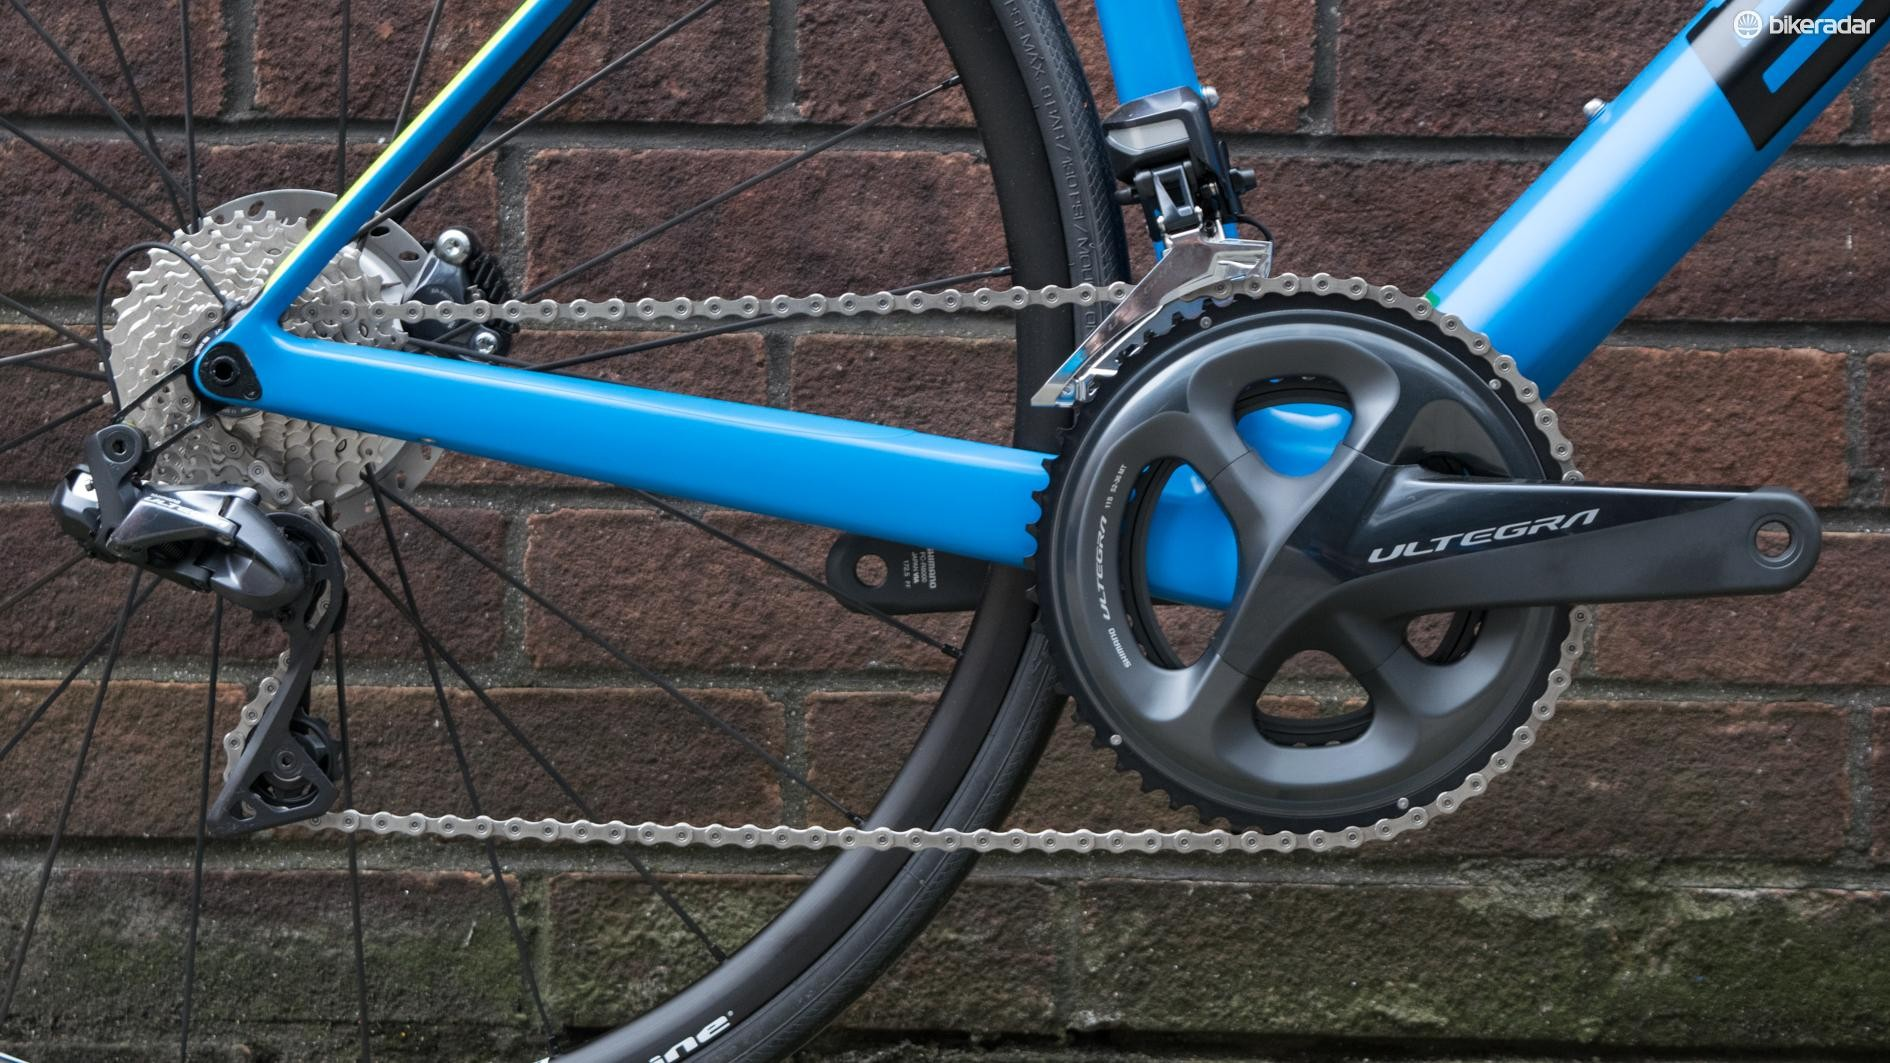 Shimano's latest Ultegra Di2 groupset is a welcome sight